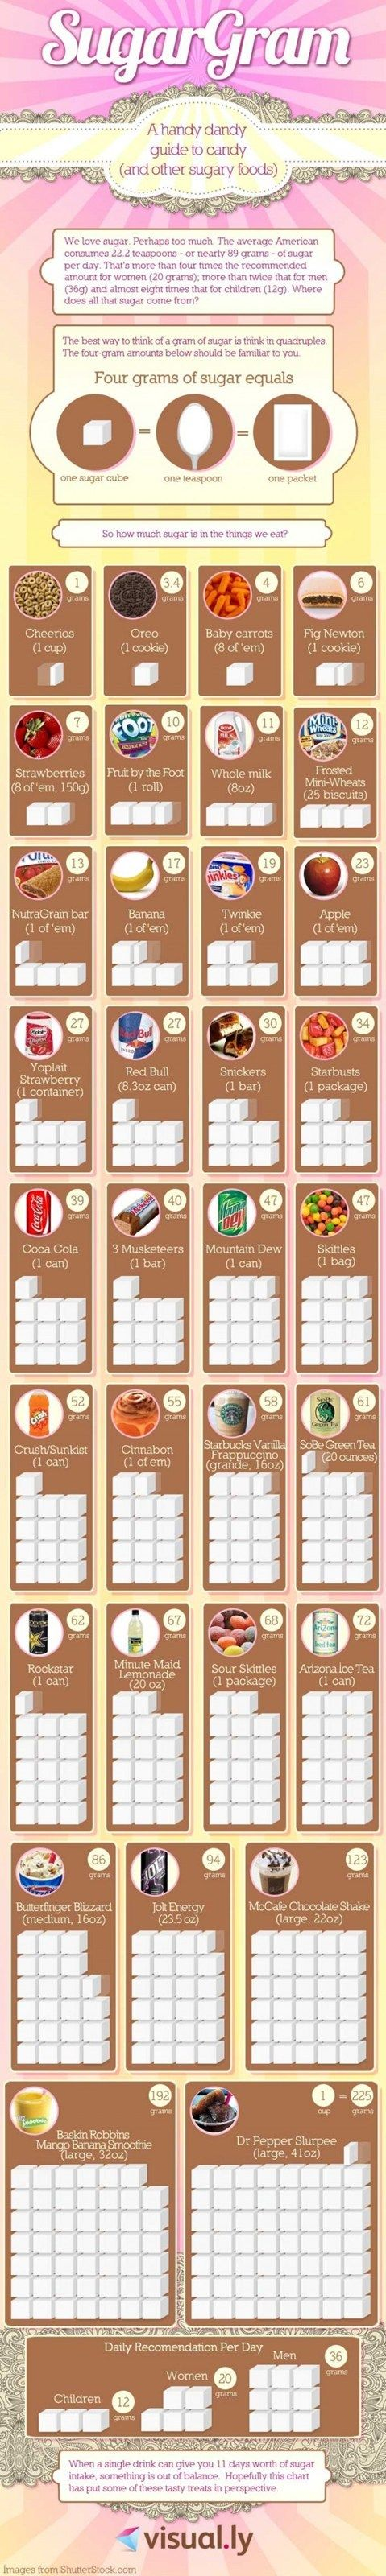 How Much Sugar Are you Eating?